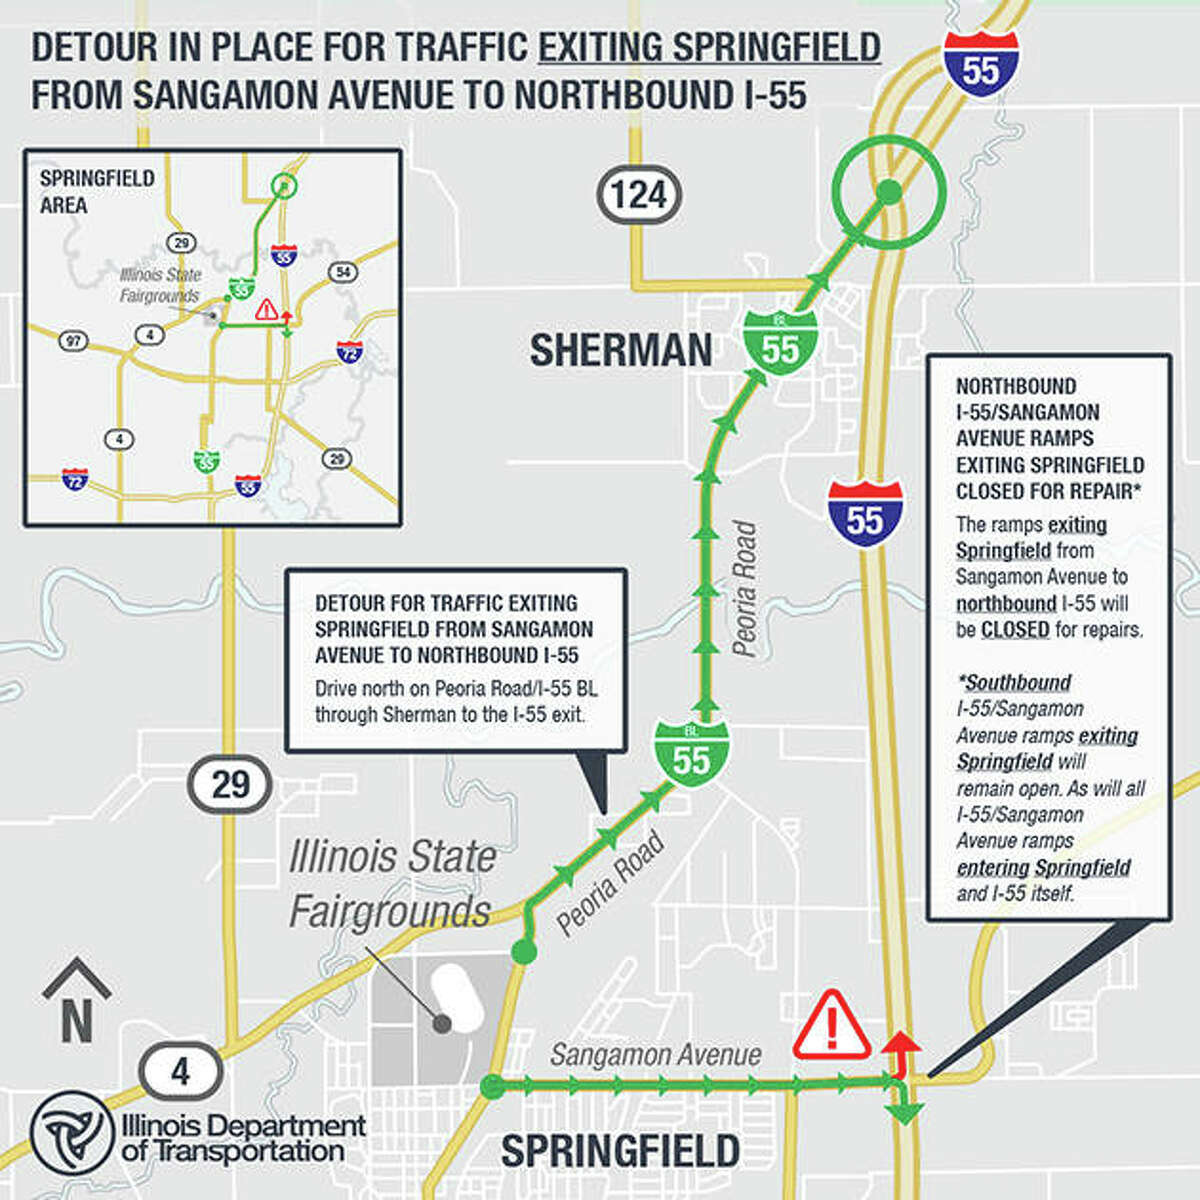 Traffic will become one-way on Peoria Road and Sangamon Avenue from the fairgrounds to Interstate 55 beginning Aug. 12. East- and westbound turn lanes at Veterans Parkway and Eighth Street will be closed.